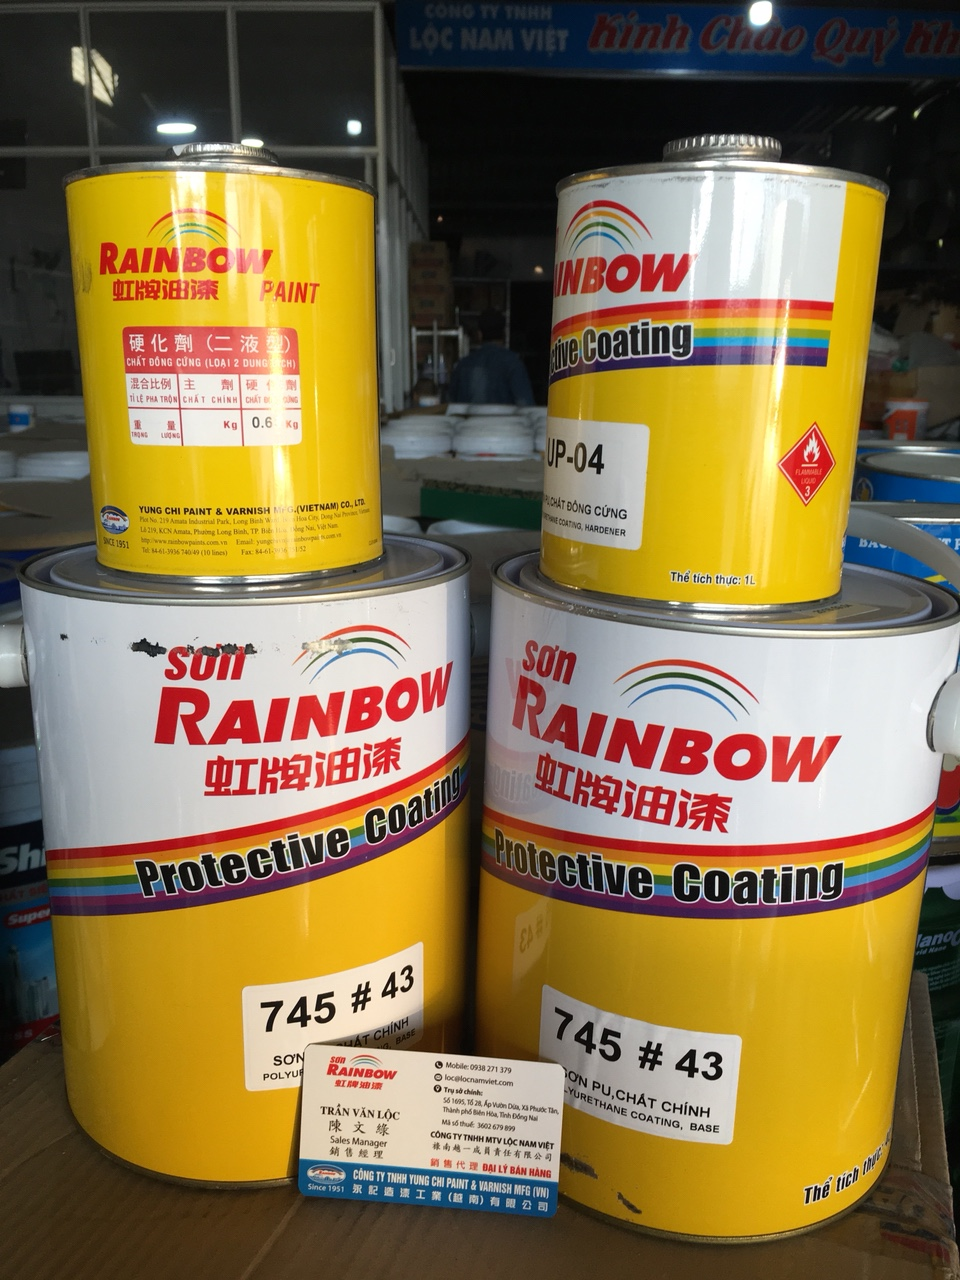 SON RAINBOW PU 745 # 43 (7)